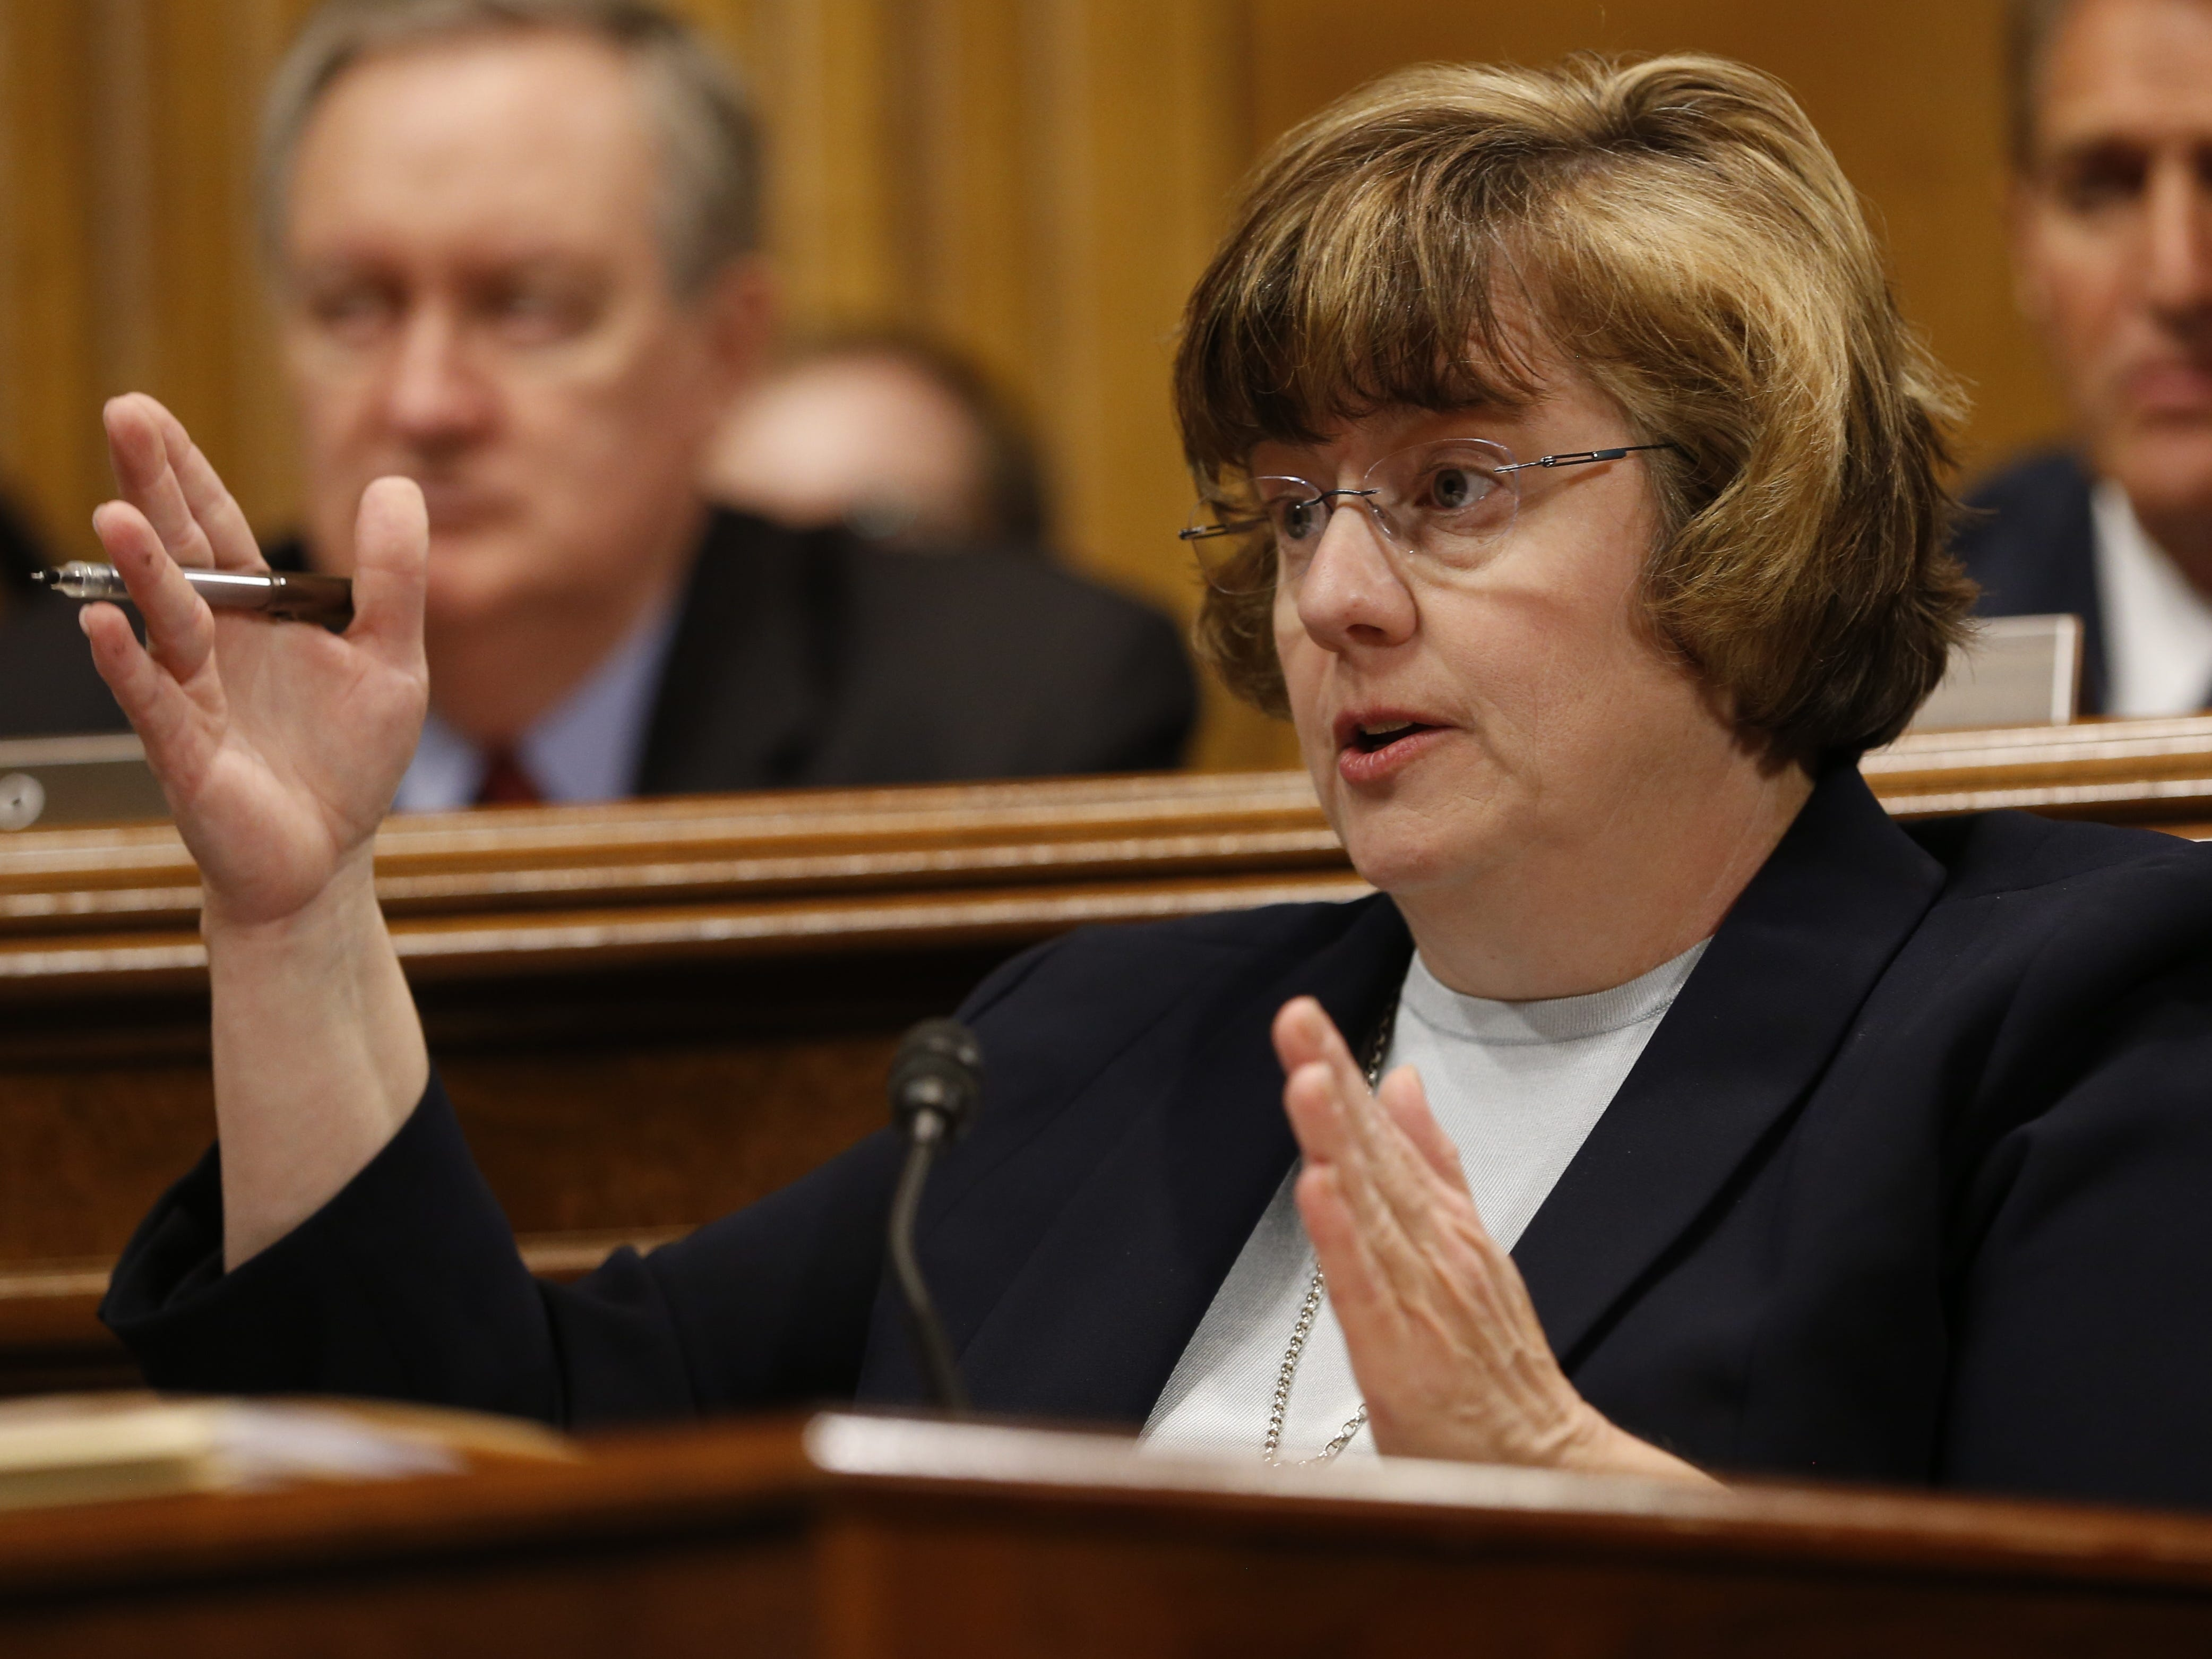 epa07051301 Republican prosecutor Rachel Mitchell asks questions to Dr. Christine Blasey Ford (unseen) at the Senate Judiciary Committee hearing on the nomination of Brett Kavanaugh to be an associate justice of the Supreme Court of the United States, on Capitol Hill in Washington, DC, USA, 27 September 2018. US President Donald J. Trump's nominee to be a US Supreme Court associate justice Brett Kavanaugh is in a tumultuous confirmation process as multiple women have accused Kavanaugh of sexual misconduct.  EPA-EFE/MICHAEL REYNOLDS ORG XMIT: MRX025